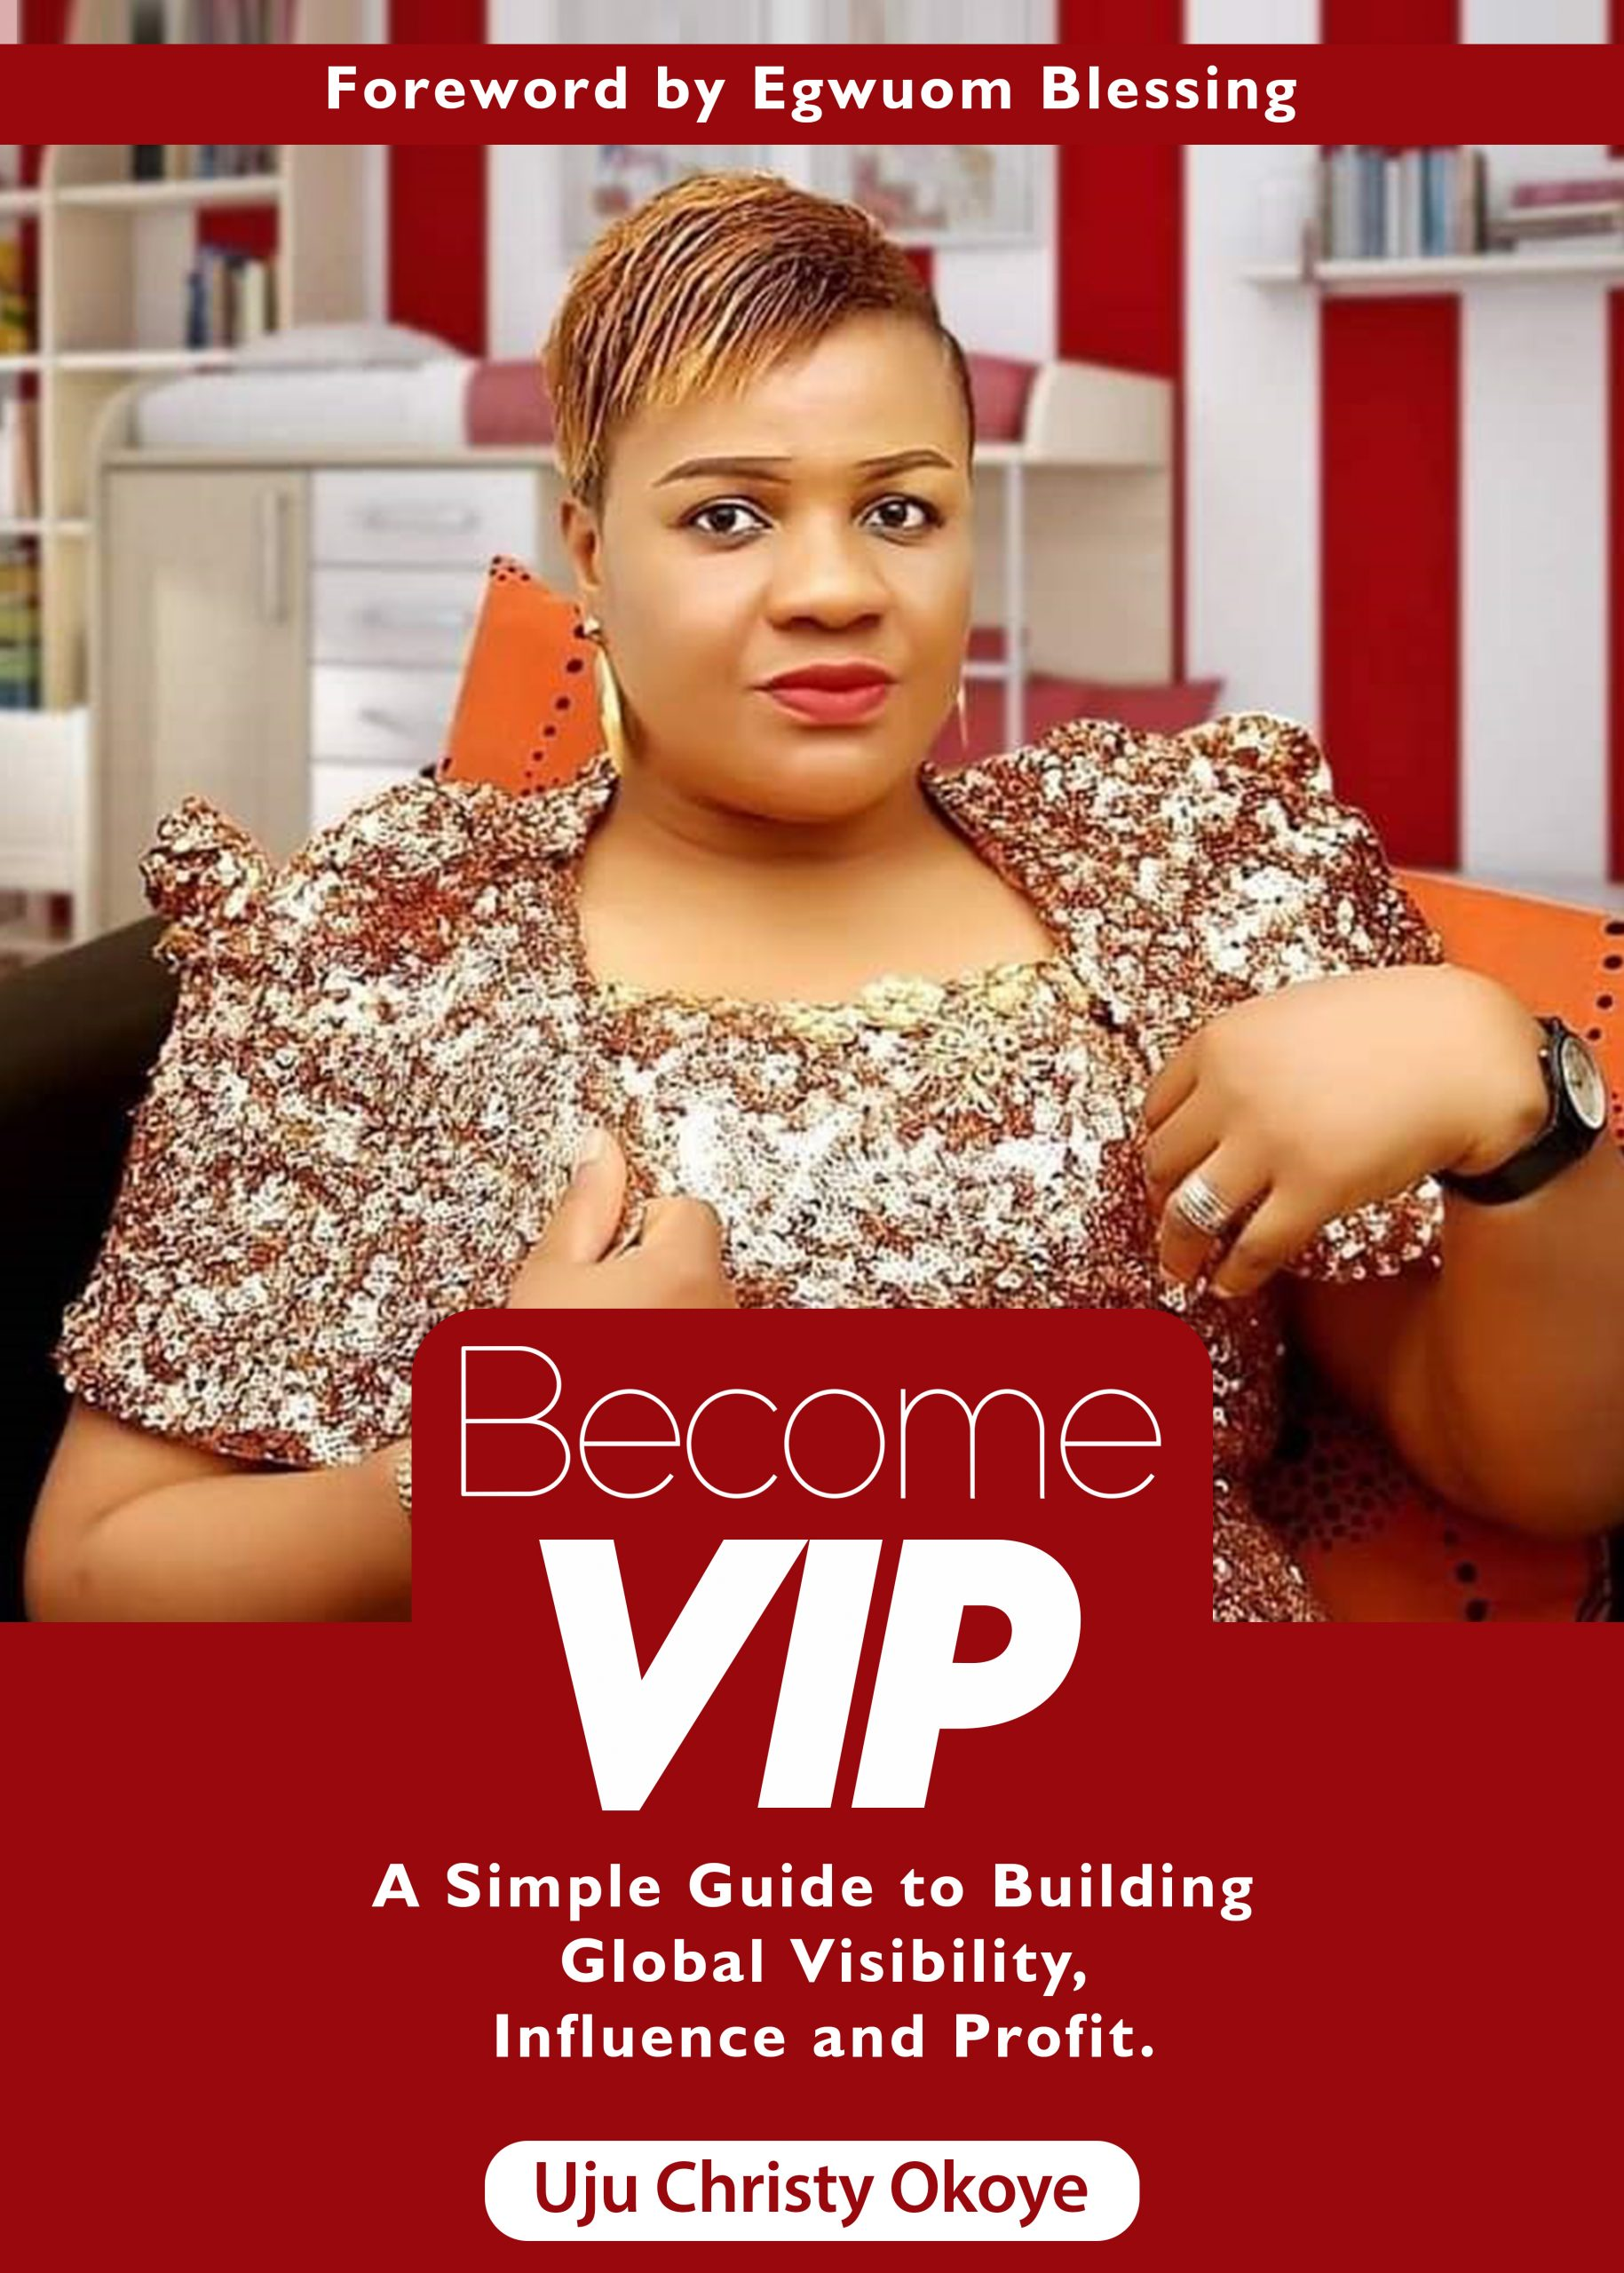 PRESS RELEASE Ceo Jidekaiji Global Services BECOME VIP BOOK LAUNCH AND BIRTHDAY OFFER!